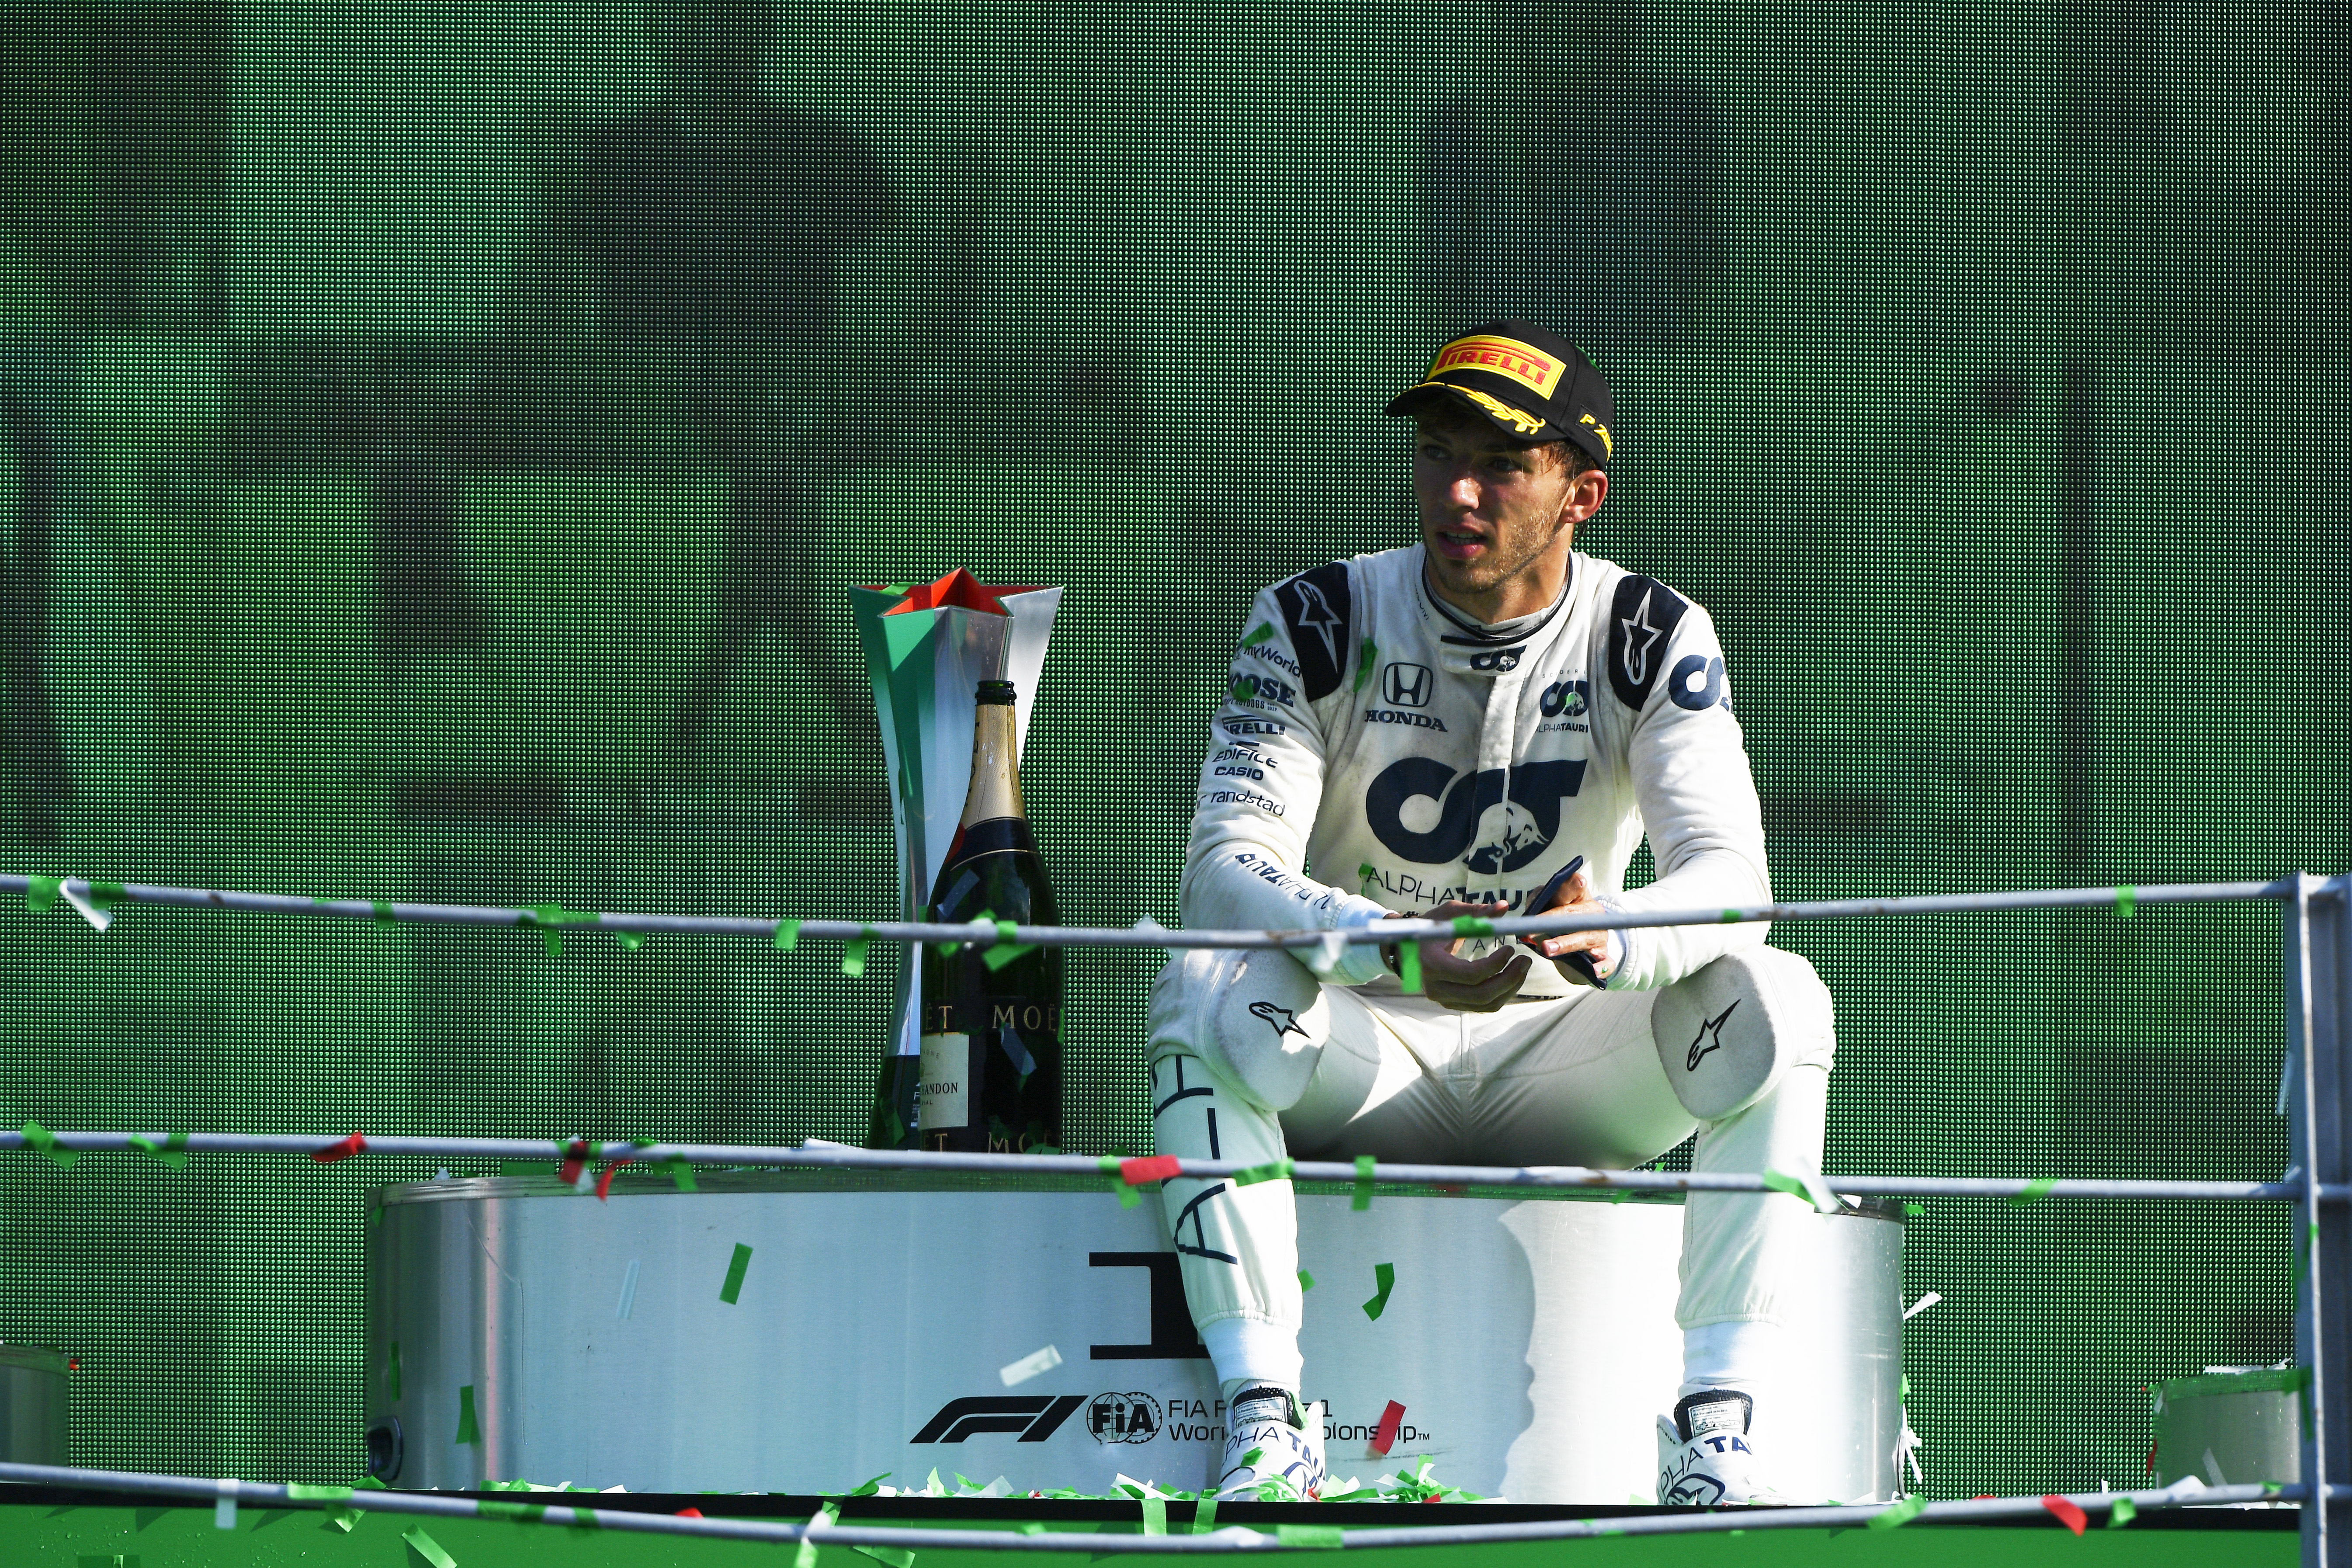 F1 Pierre Gasly Wins For First Time In Monza As Lewis Hamilton Penalized